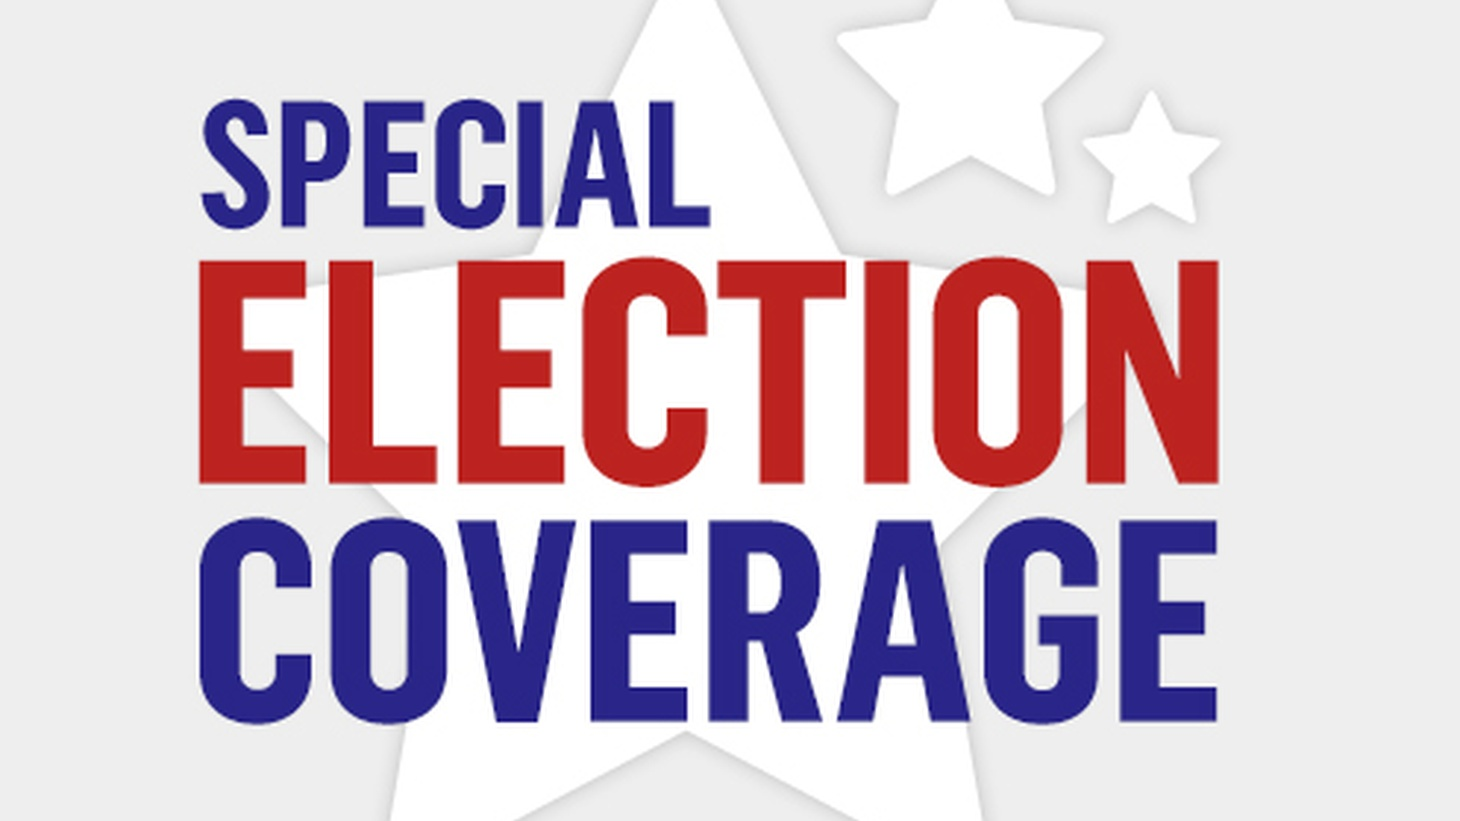 NPR's special coverage of the Indiana Primary airs Tuesday, May 3, from 4-5pm DST. Scott Detrow hosts, with newsmaker interviews and analysis from NPR's political team.